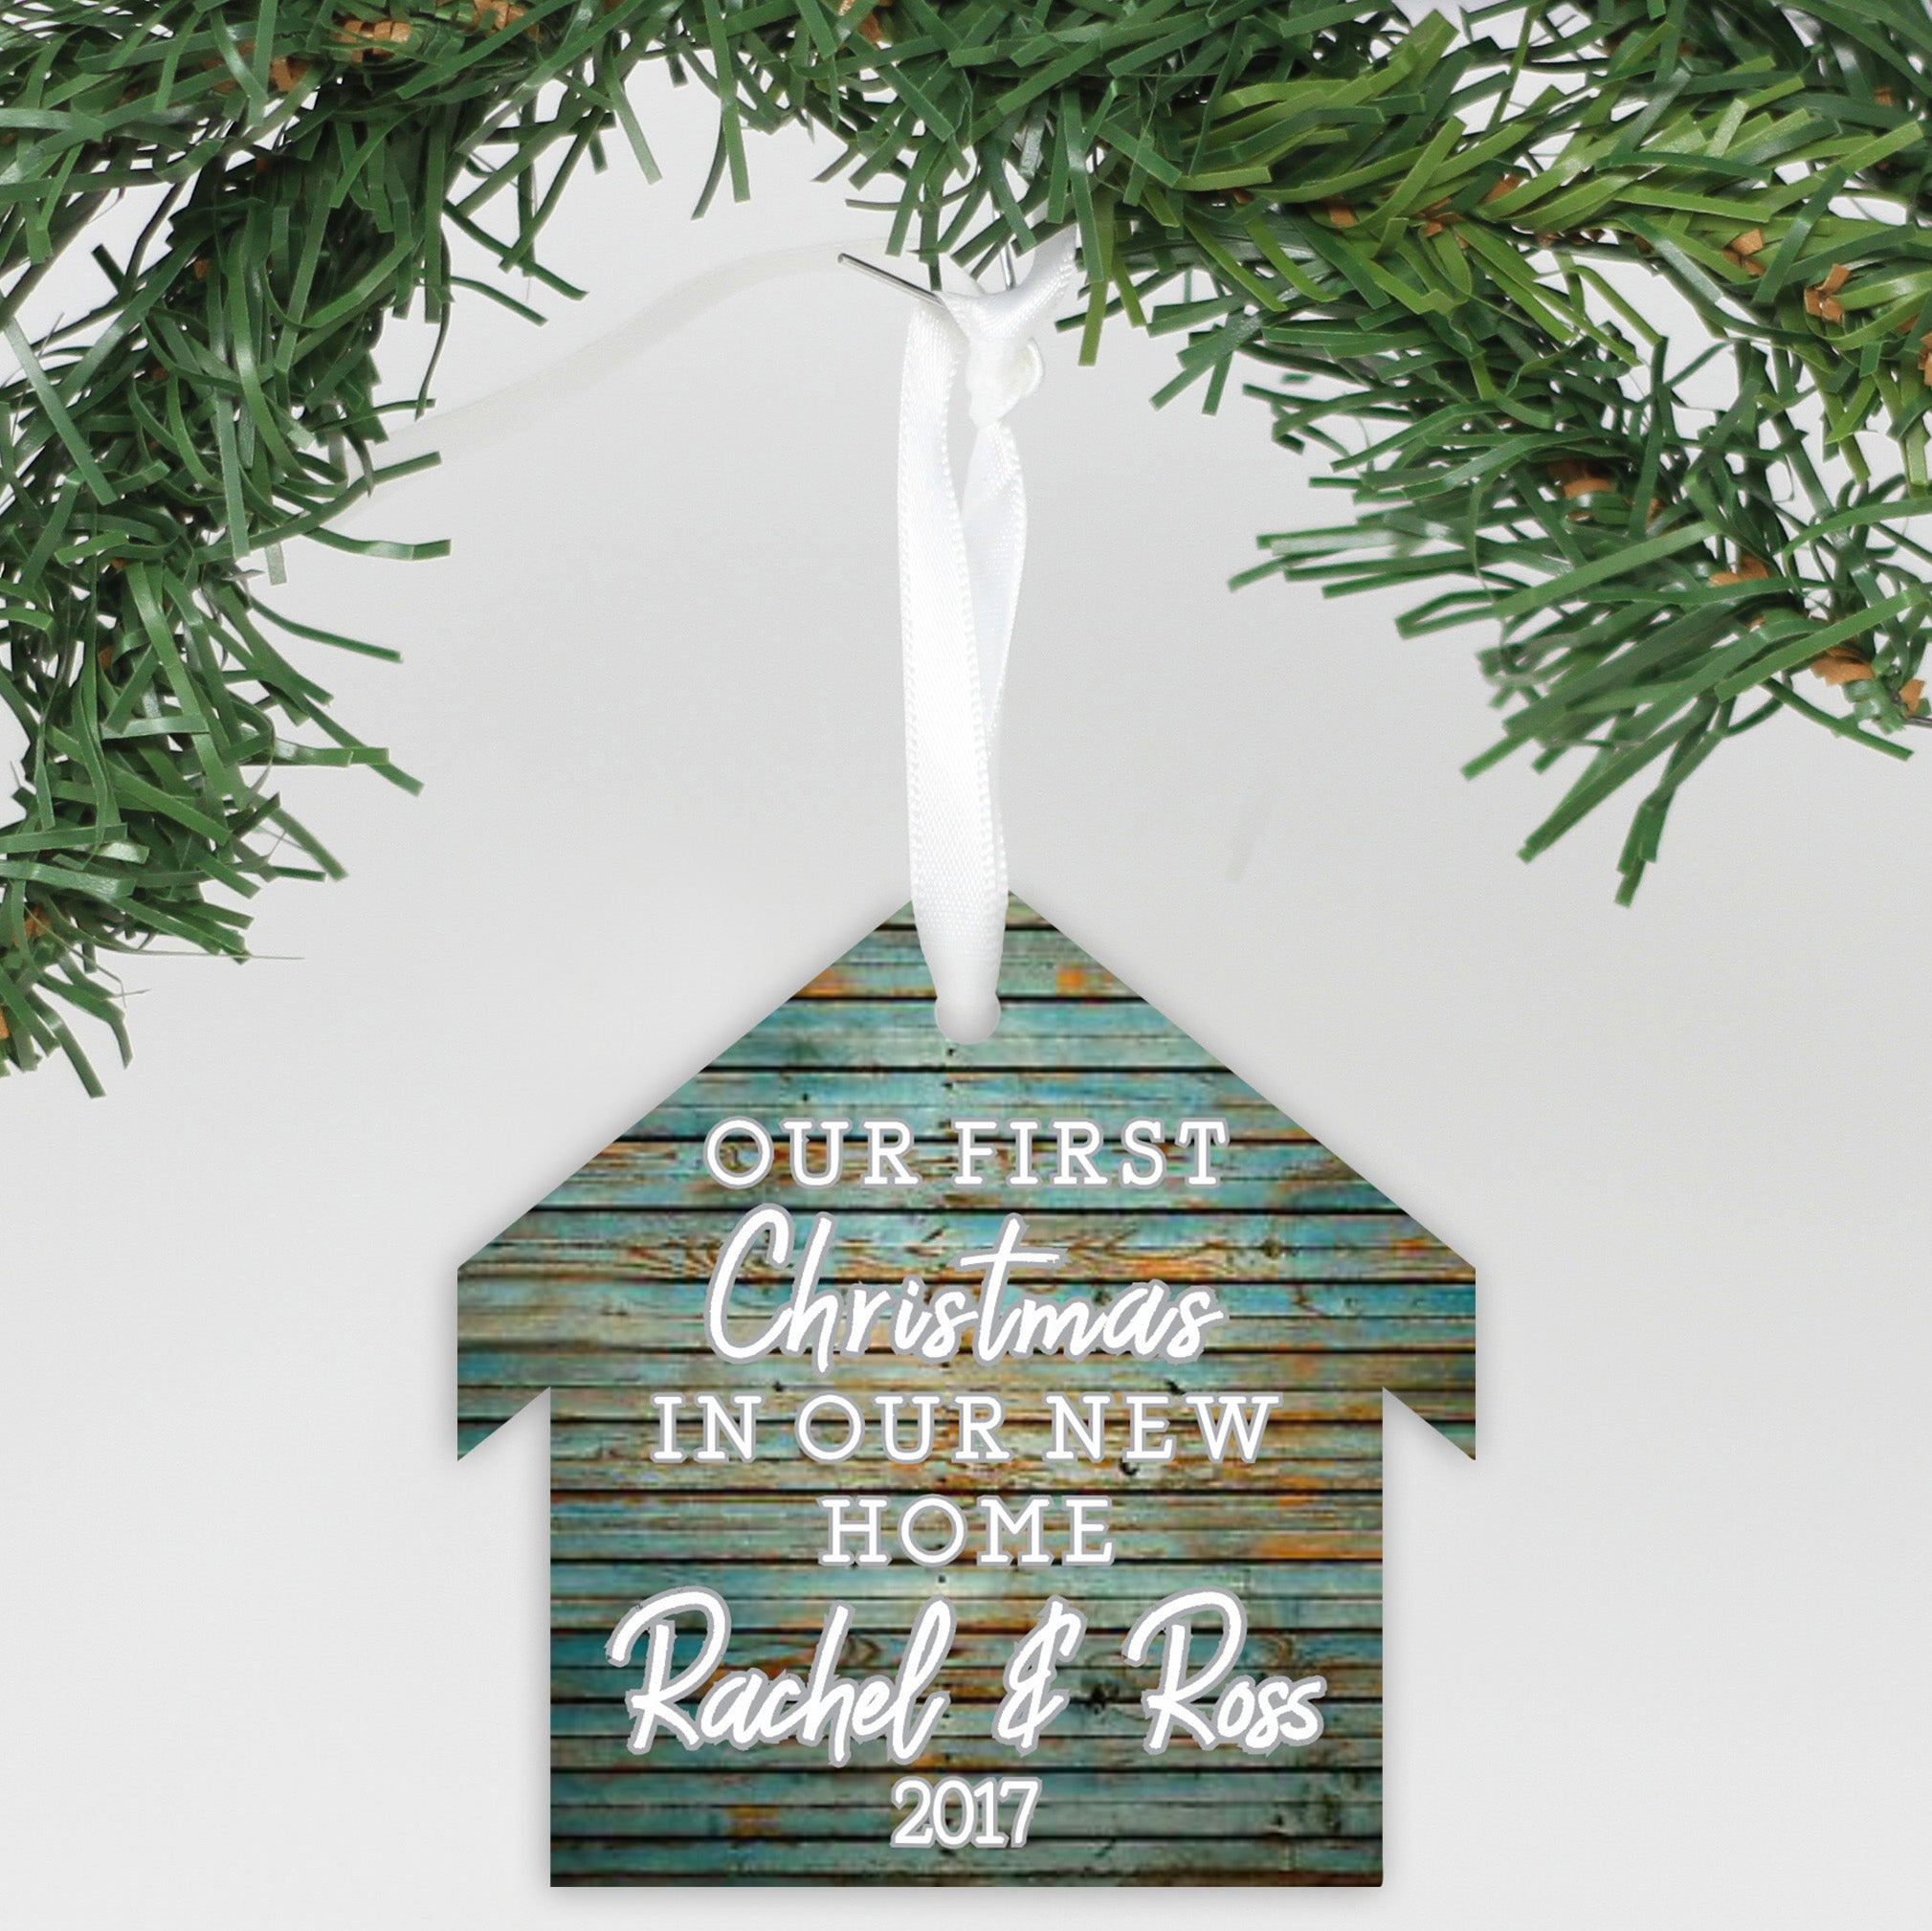 Our First Home Christmas Ornament.Personalized Christmas Ornament Our First Christmas In Our New Home